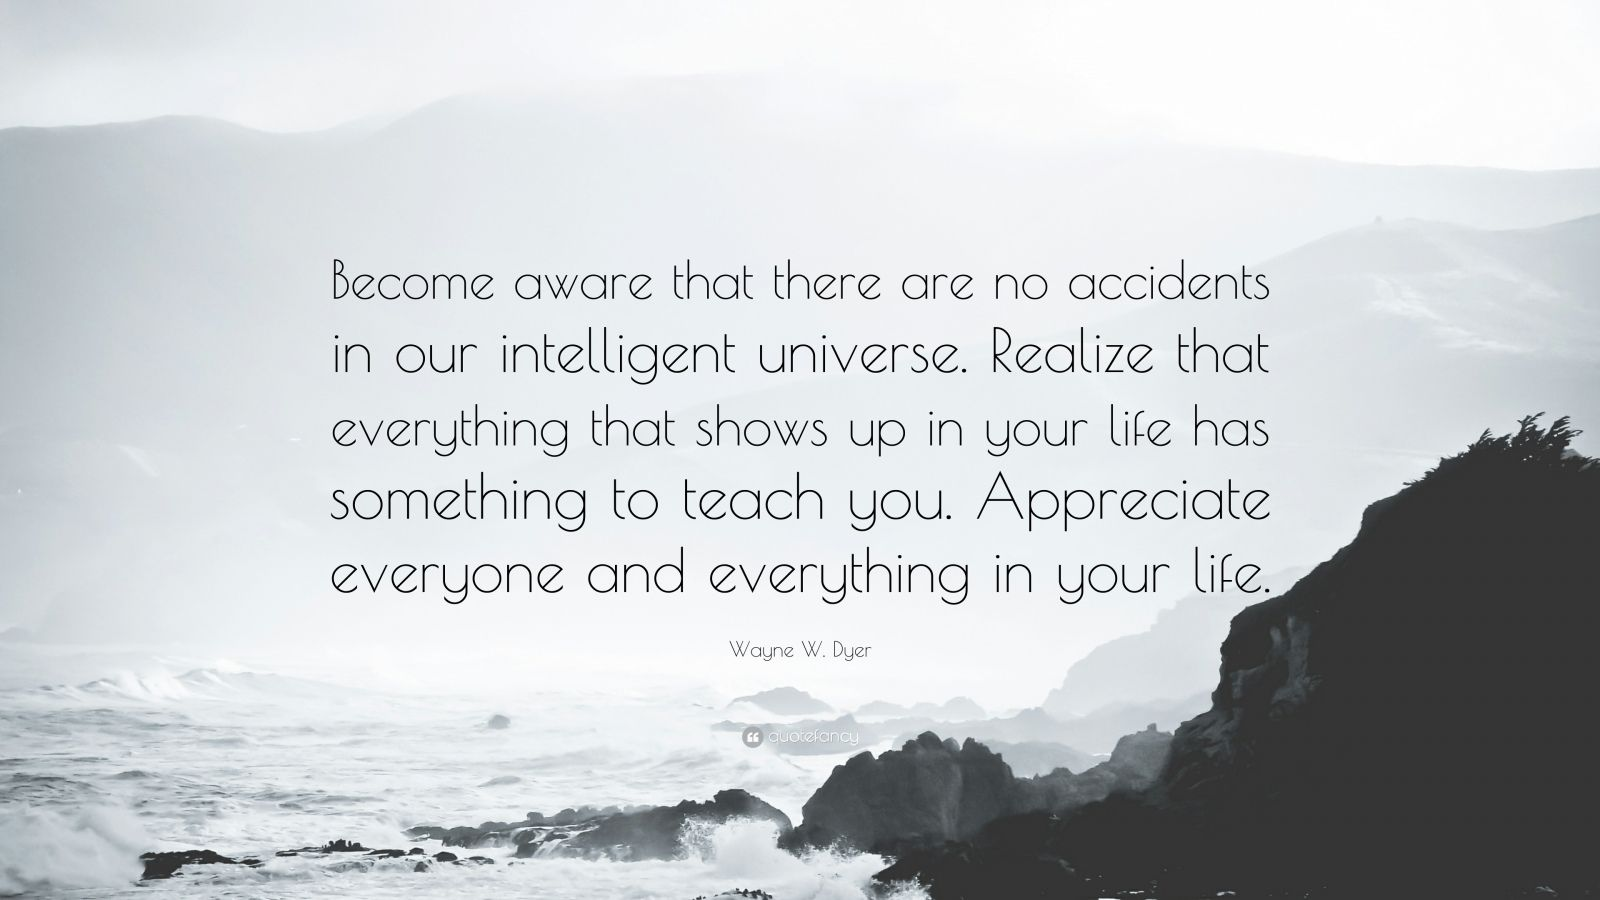 """Wayne W. Dyer Quote: """"Become aware that there are no accidents in our intelligent universe. Realize that everything that shows up in your life has something to teach you. Appreciate everyone and everything in your life."""""""